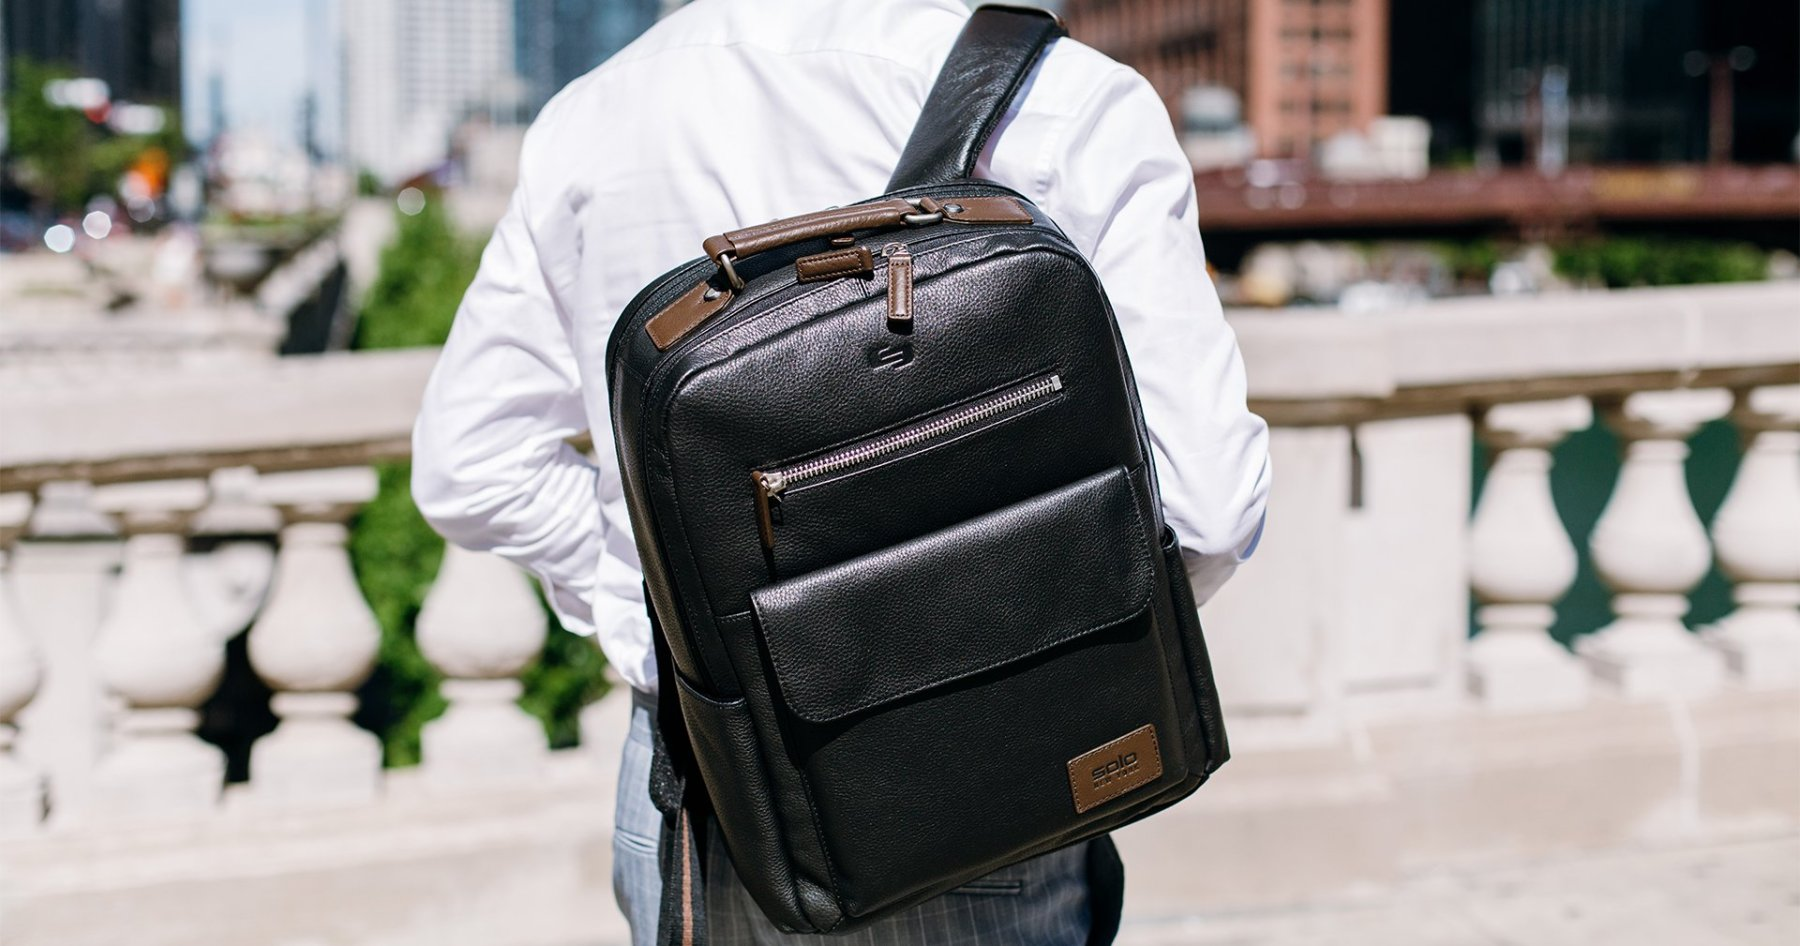 Solo Makes Bags for NYC, Minus the NYC Prices